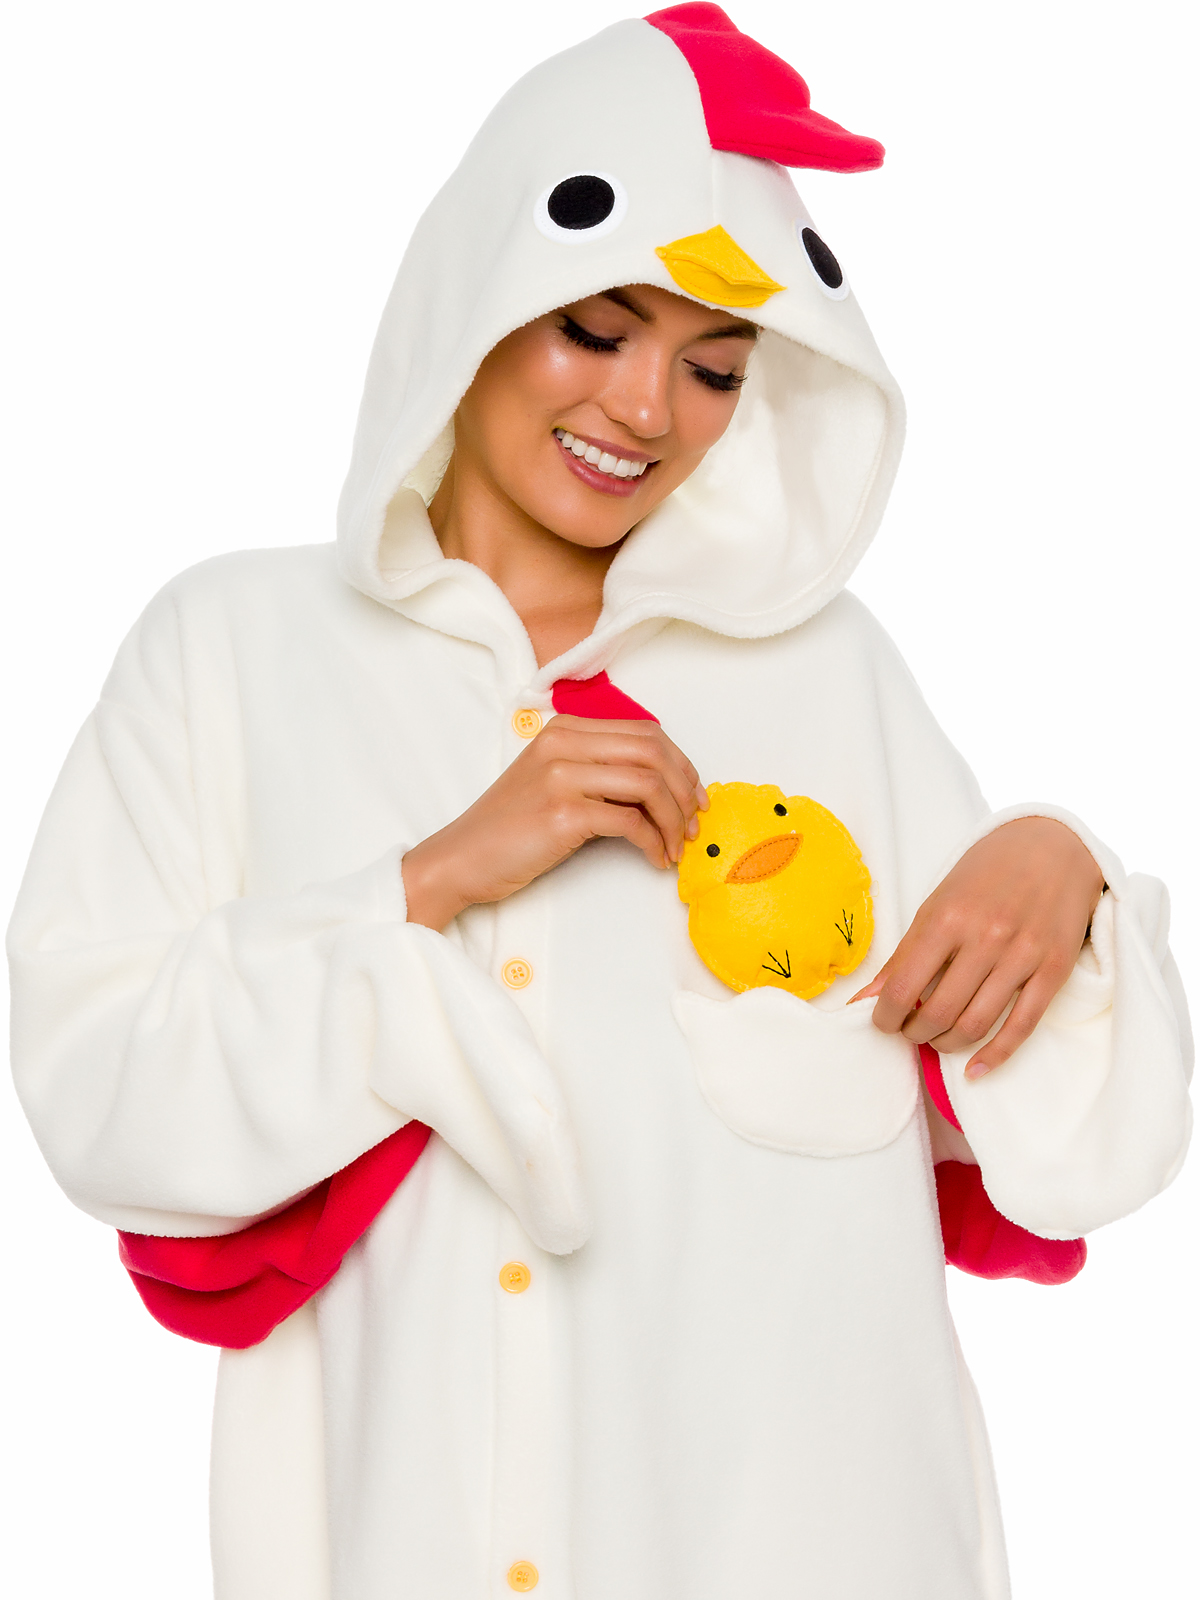 316f8472198 SILVER LILLY Unisex Adult Plush Chicken Animal Cosplay Costume Pajamas  (Large)